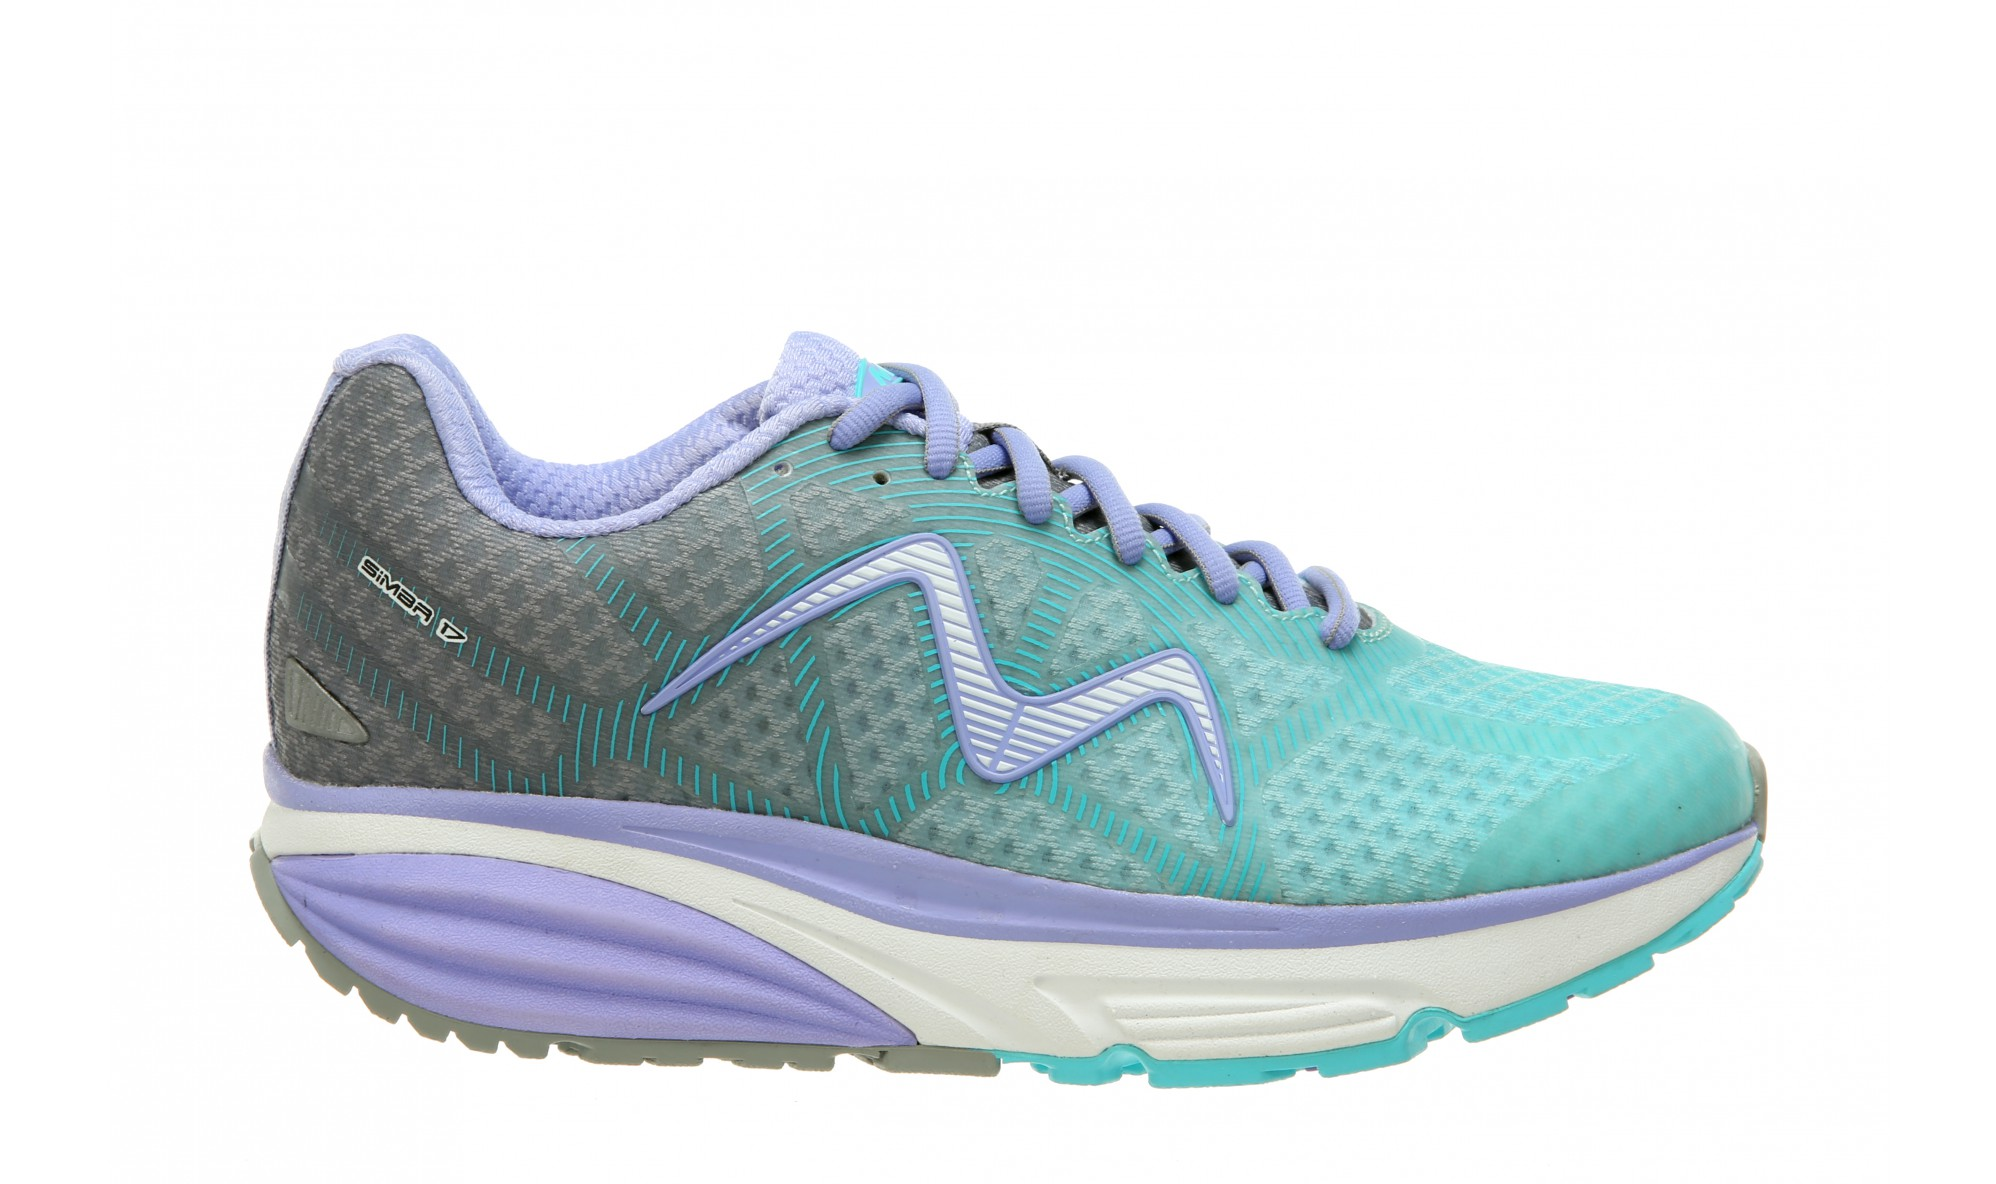 MBT Simba 17 - Women's - Grey/Cyan